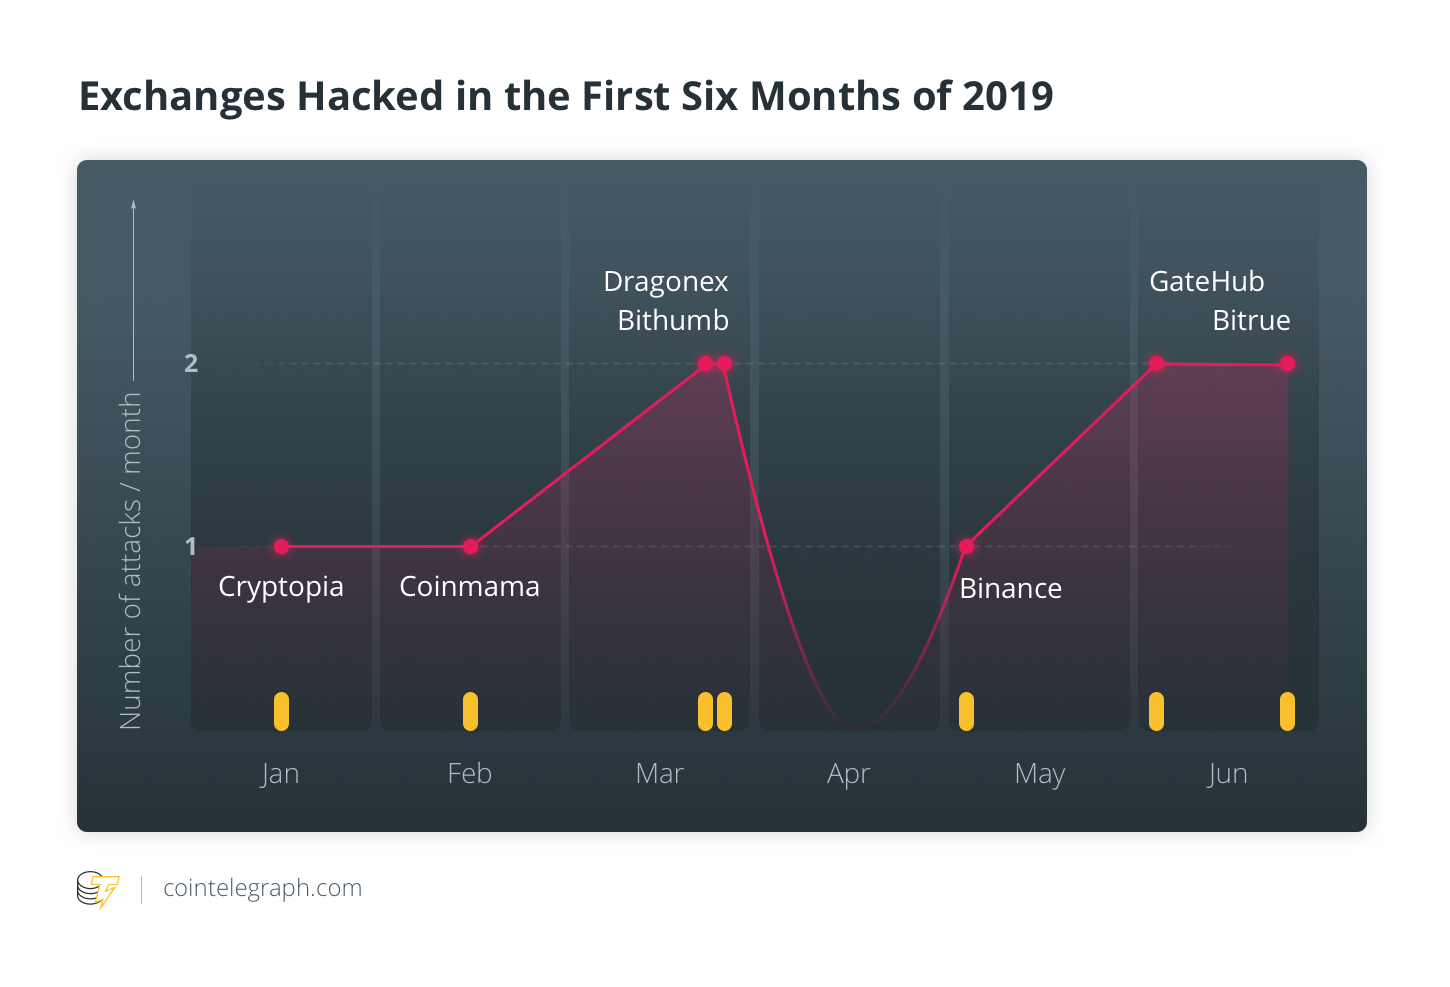 Exchanges hacked in the first half of 2019